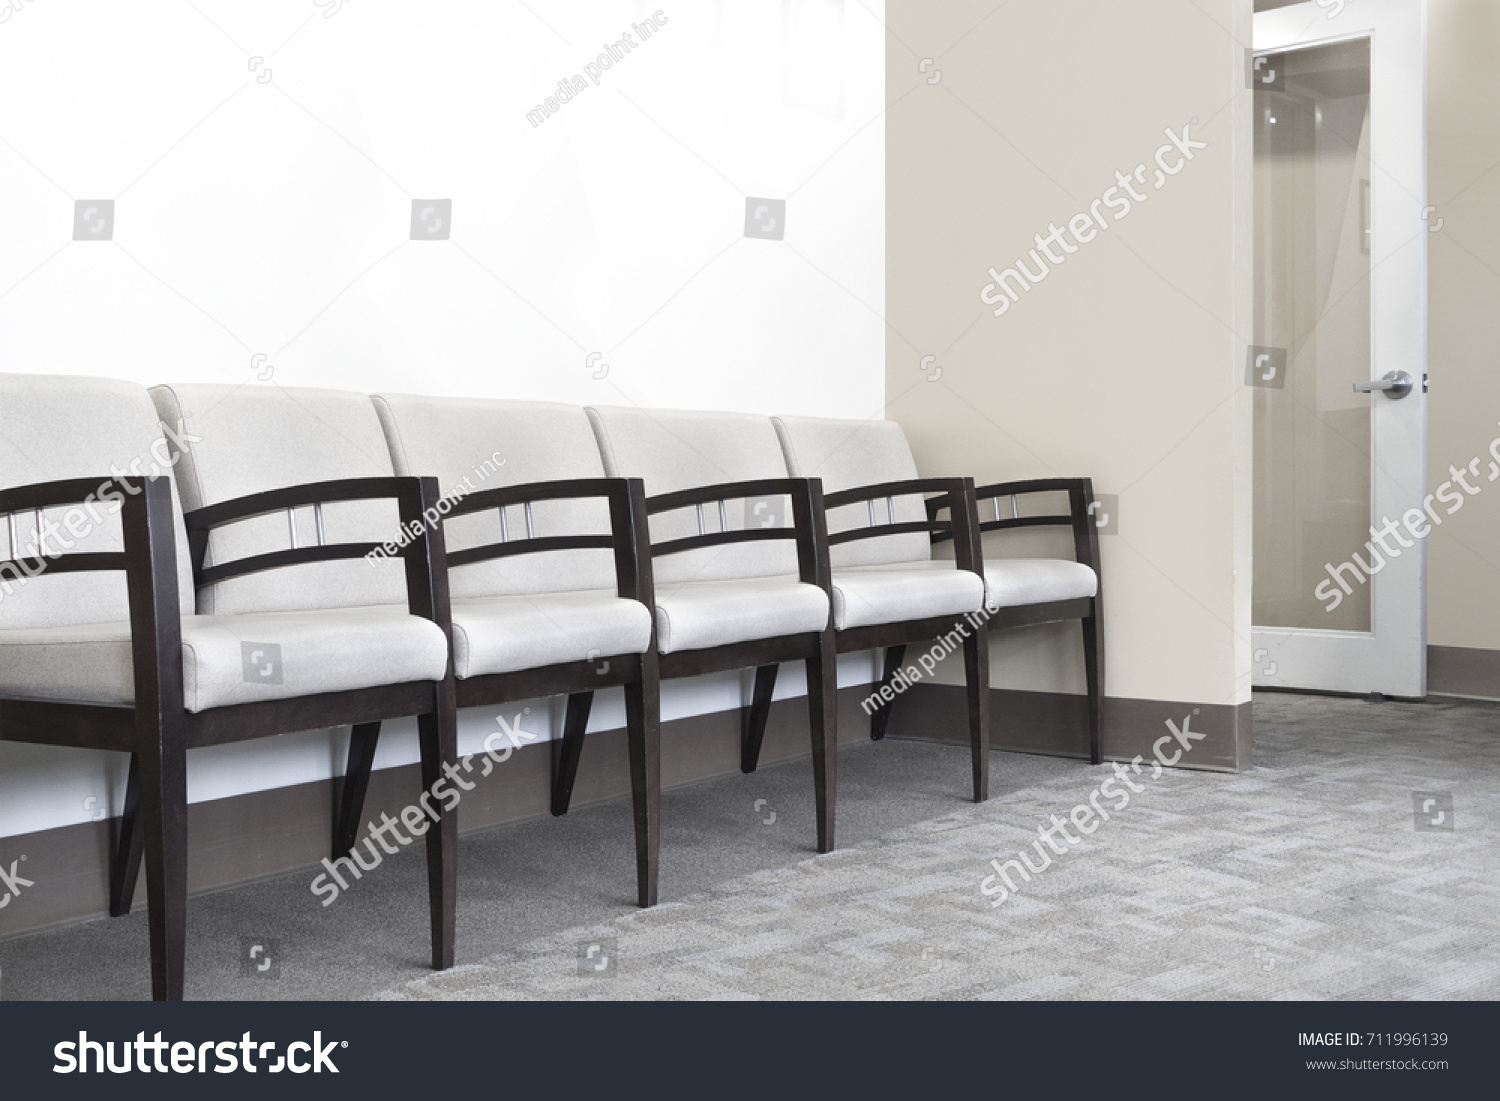 Doctors Office Waiting Seating Area Stock Photo 711996139 ...